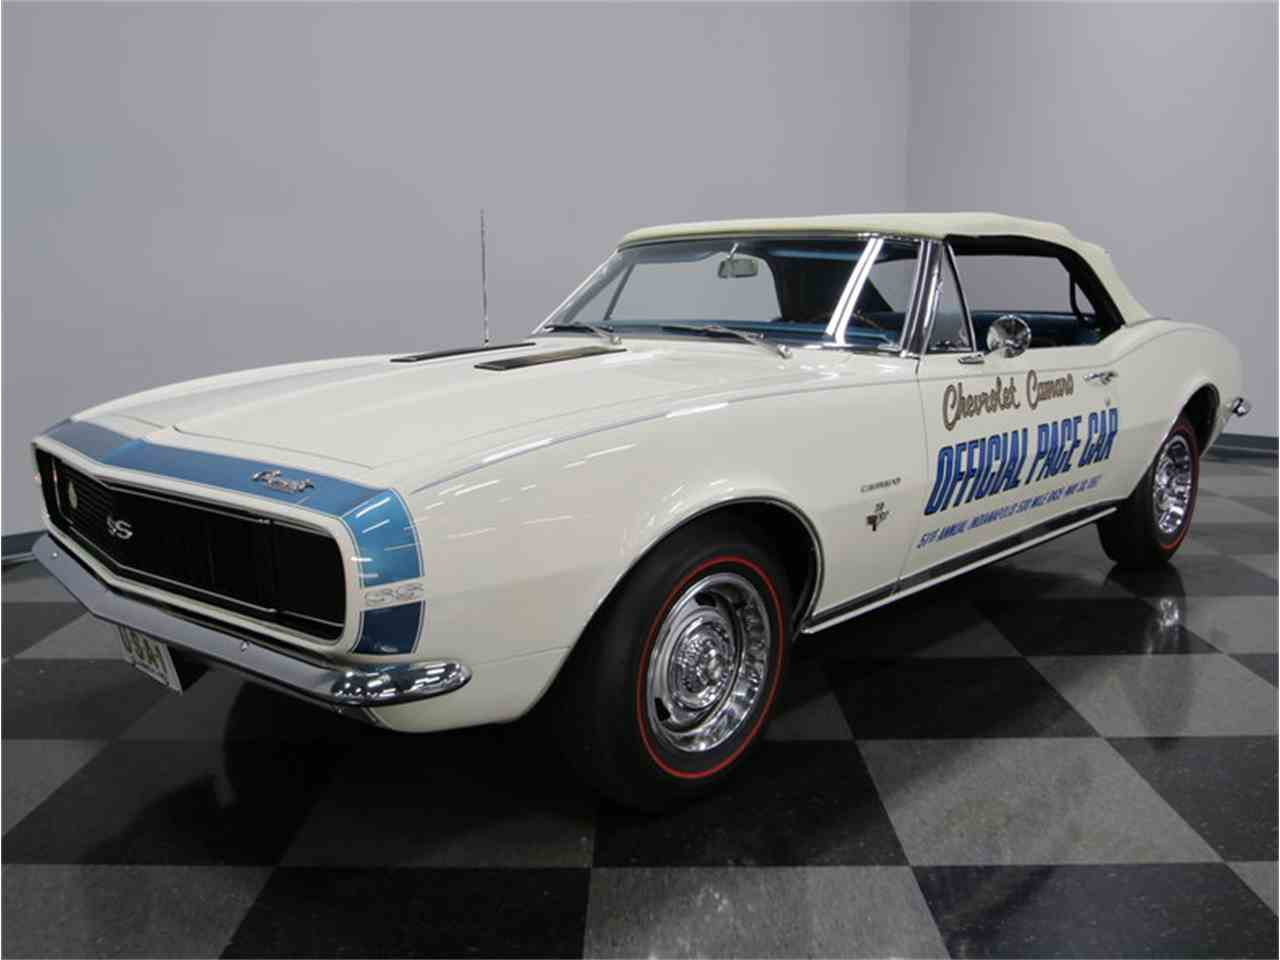 Large Picture of 1967 Chevrolet Camaro Indianapolis 500 Pace Car - $99,995.00 Offered by Streetside Classics - Nashville - JI5M